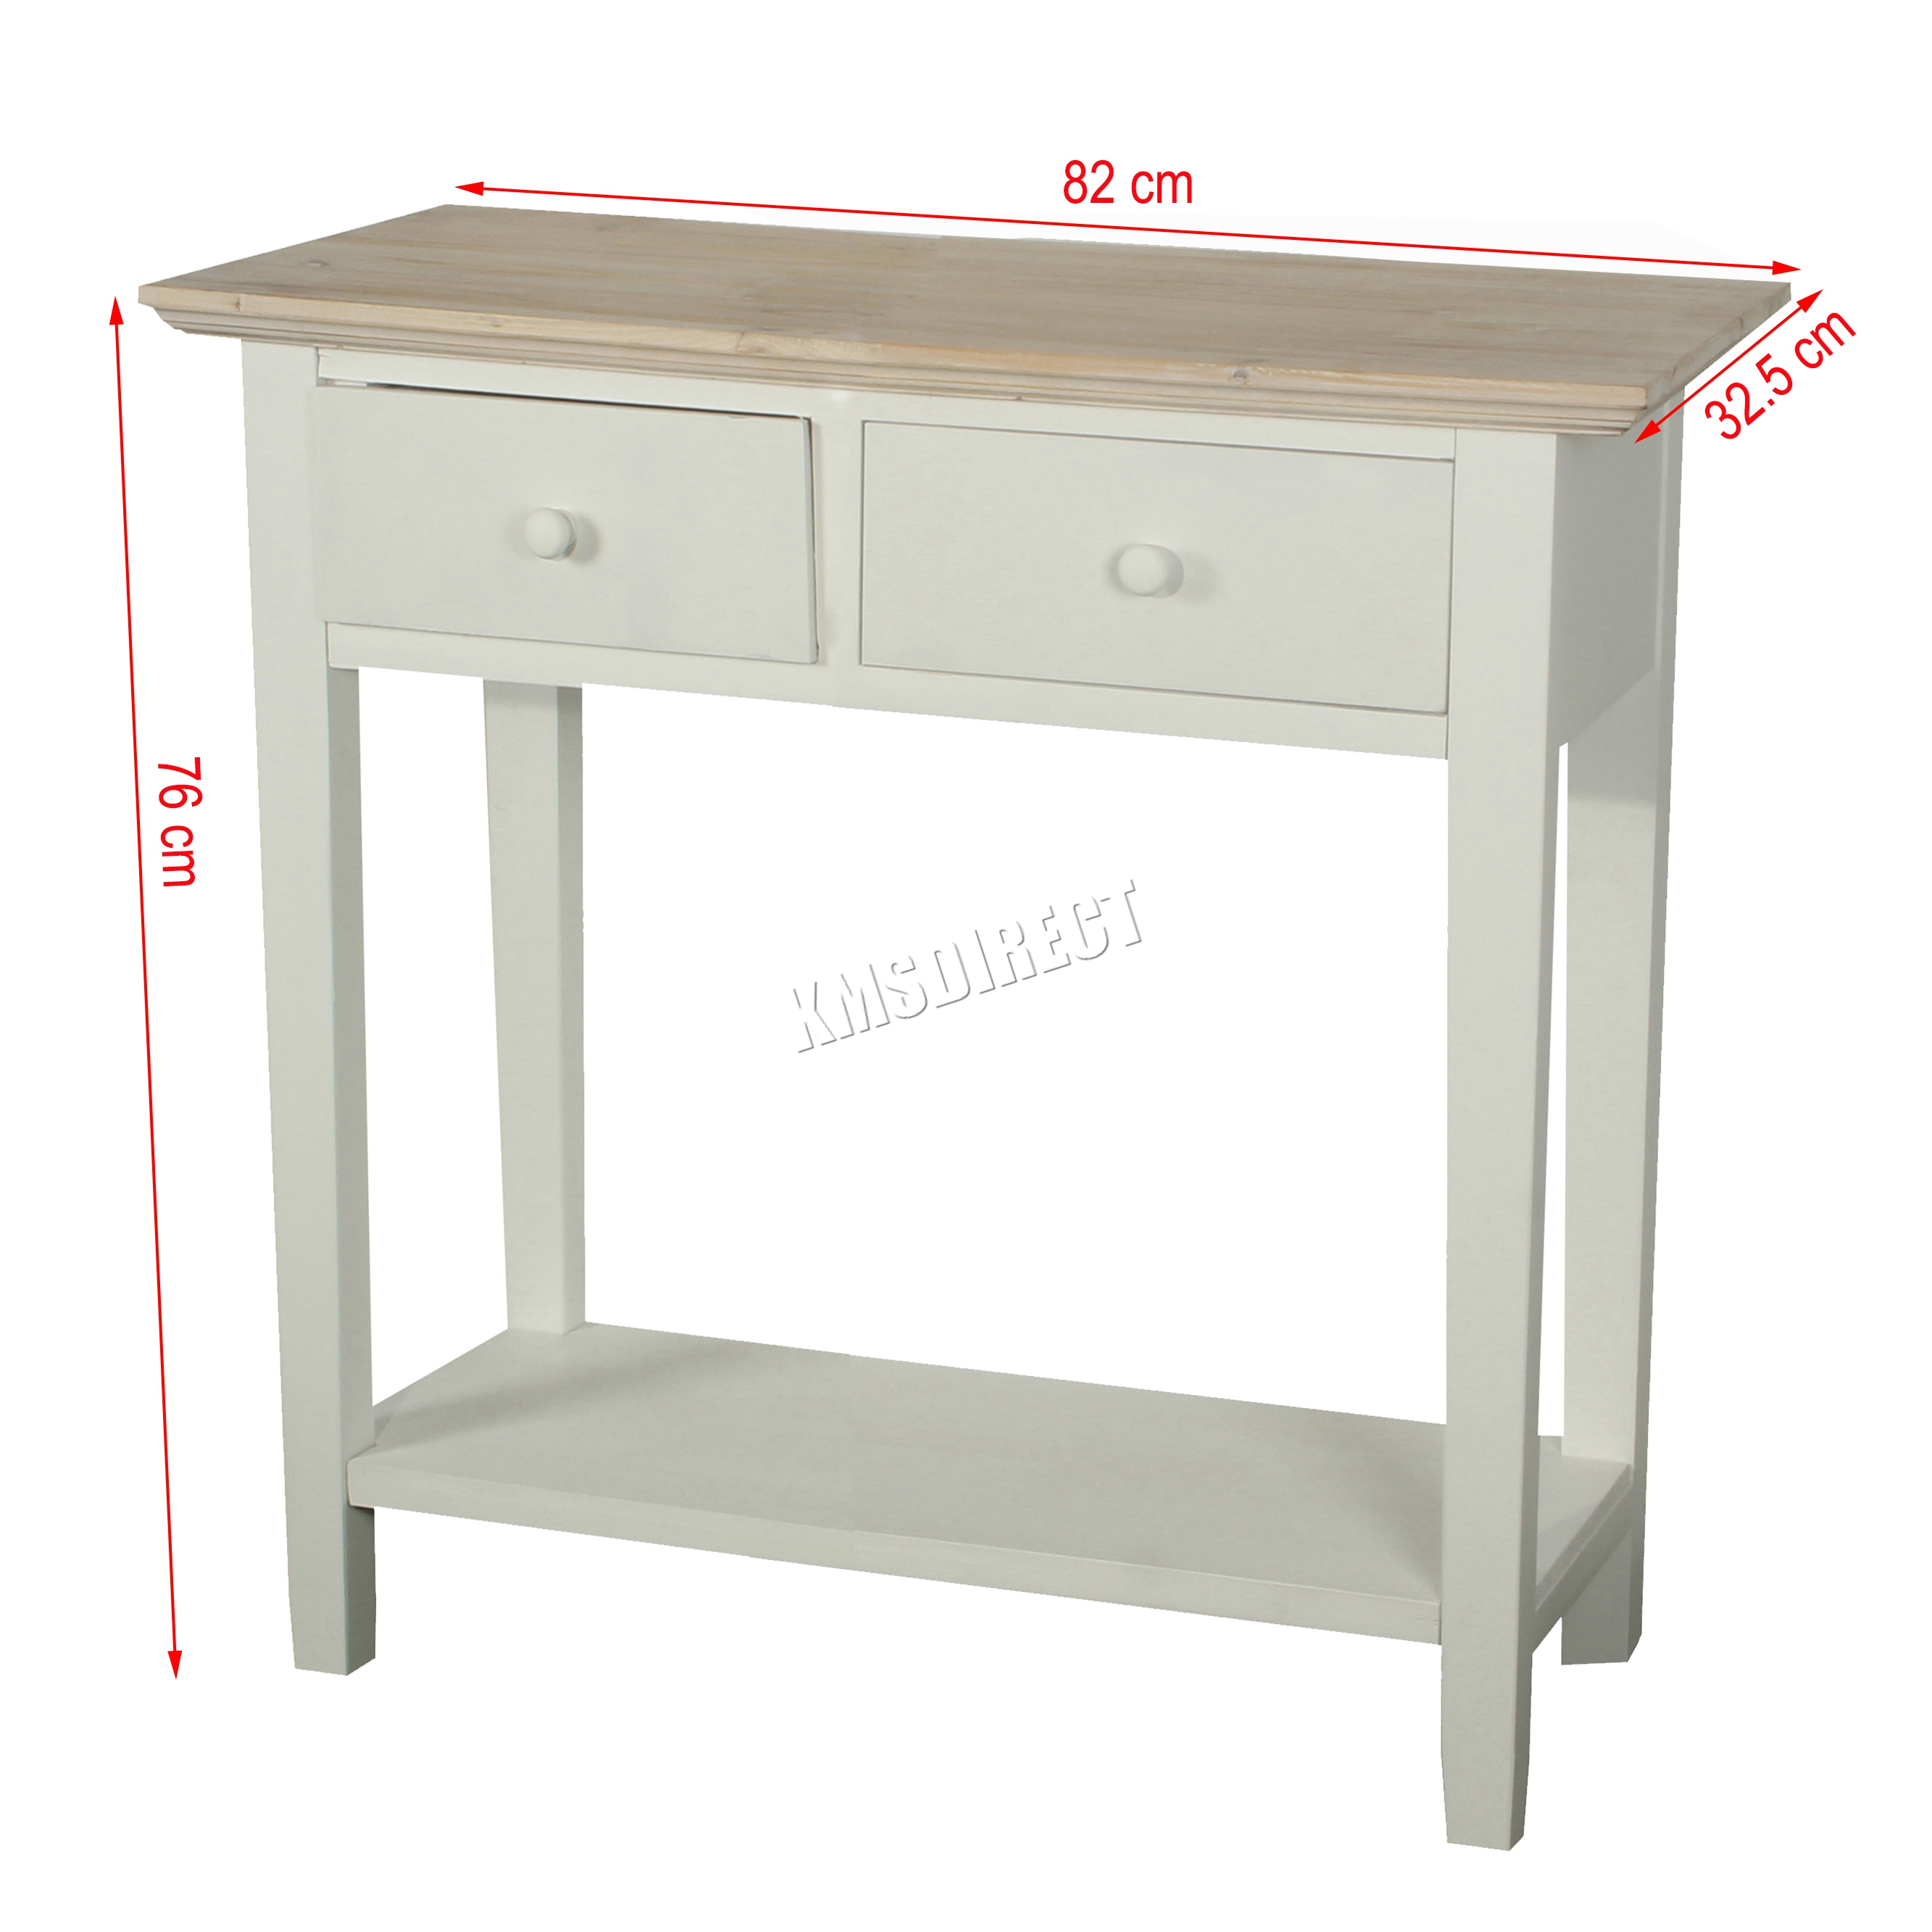 kitchen storage table foxhunter console table 2 drawers wood hallway side 3187